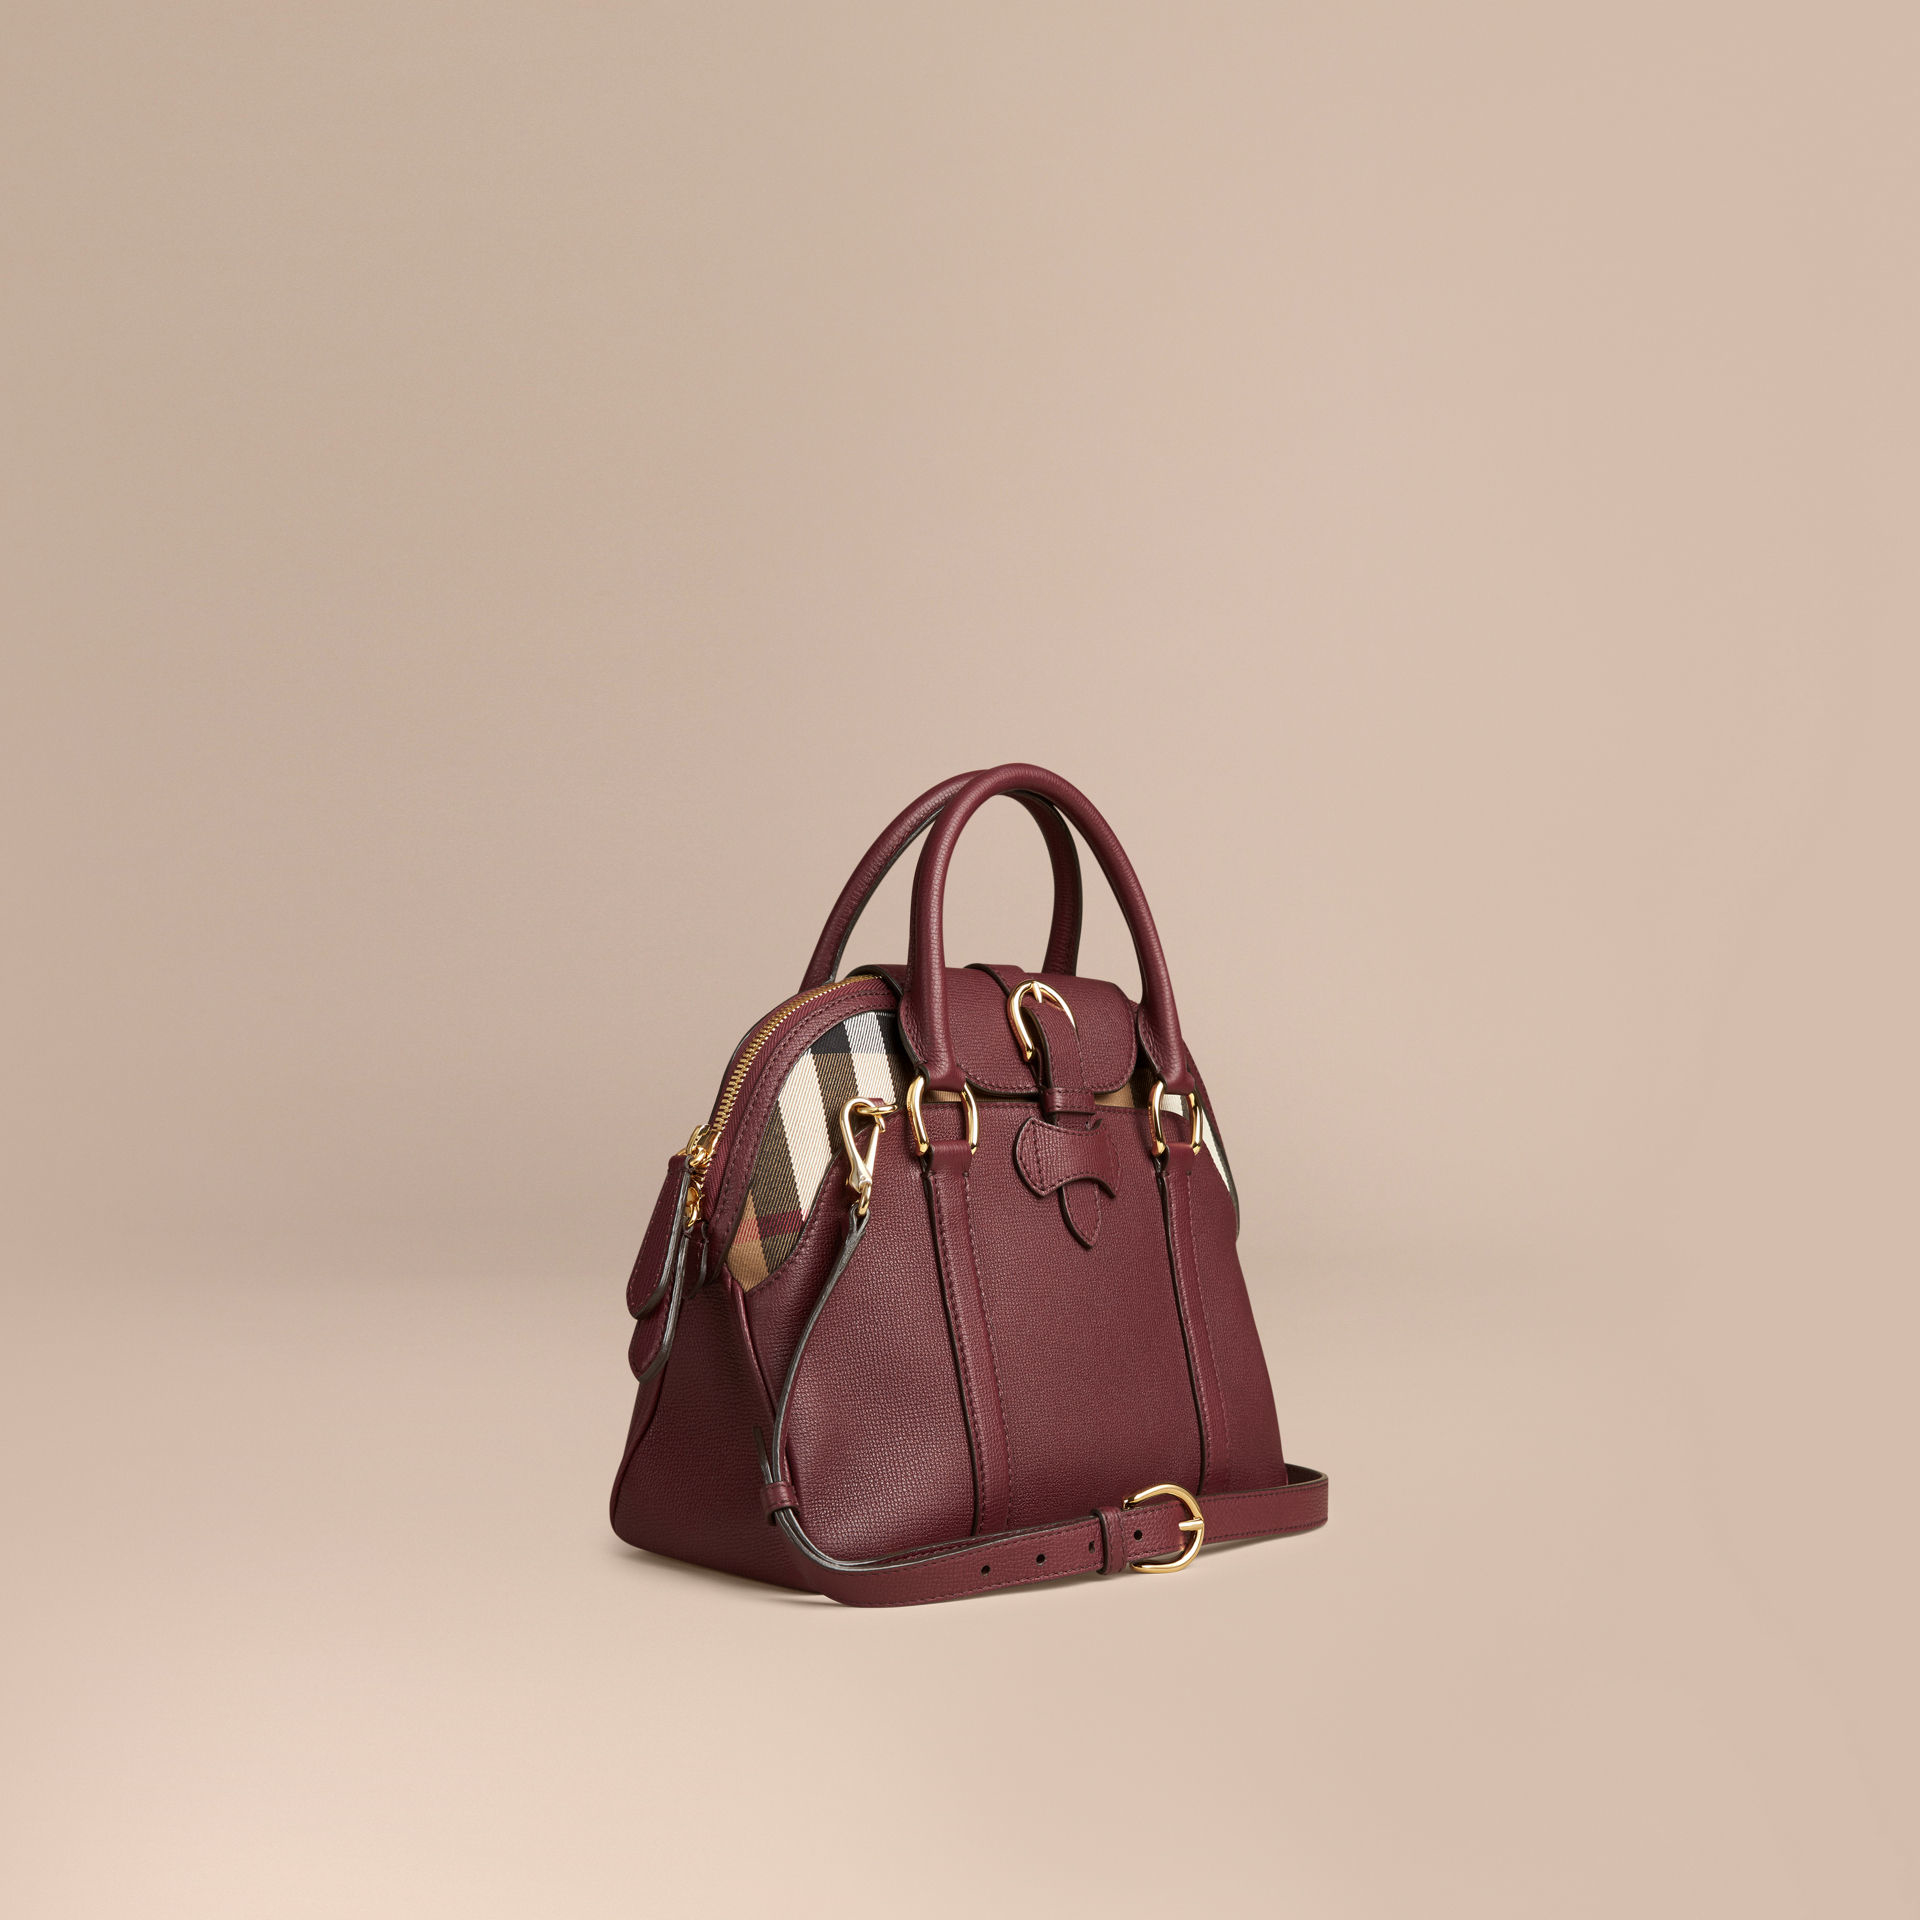 0869deee03db Lyst - Burberry Medium Leather And House Check Bowling Bag Mahogany ...